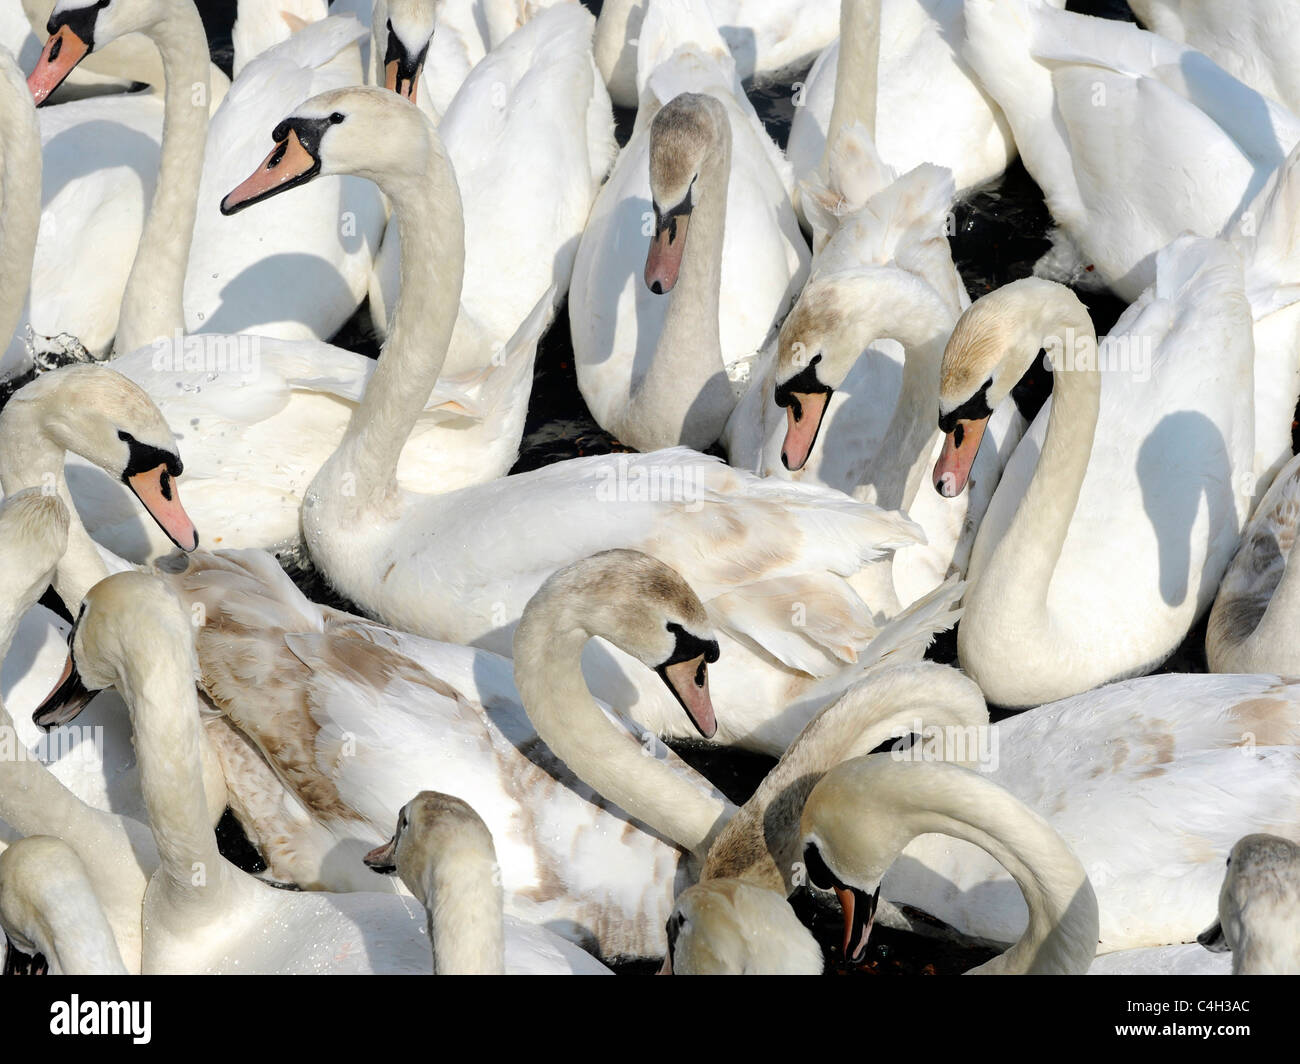 A large group of swans. - Stock Image